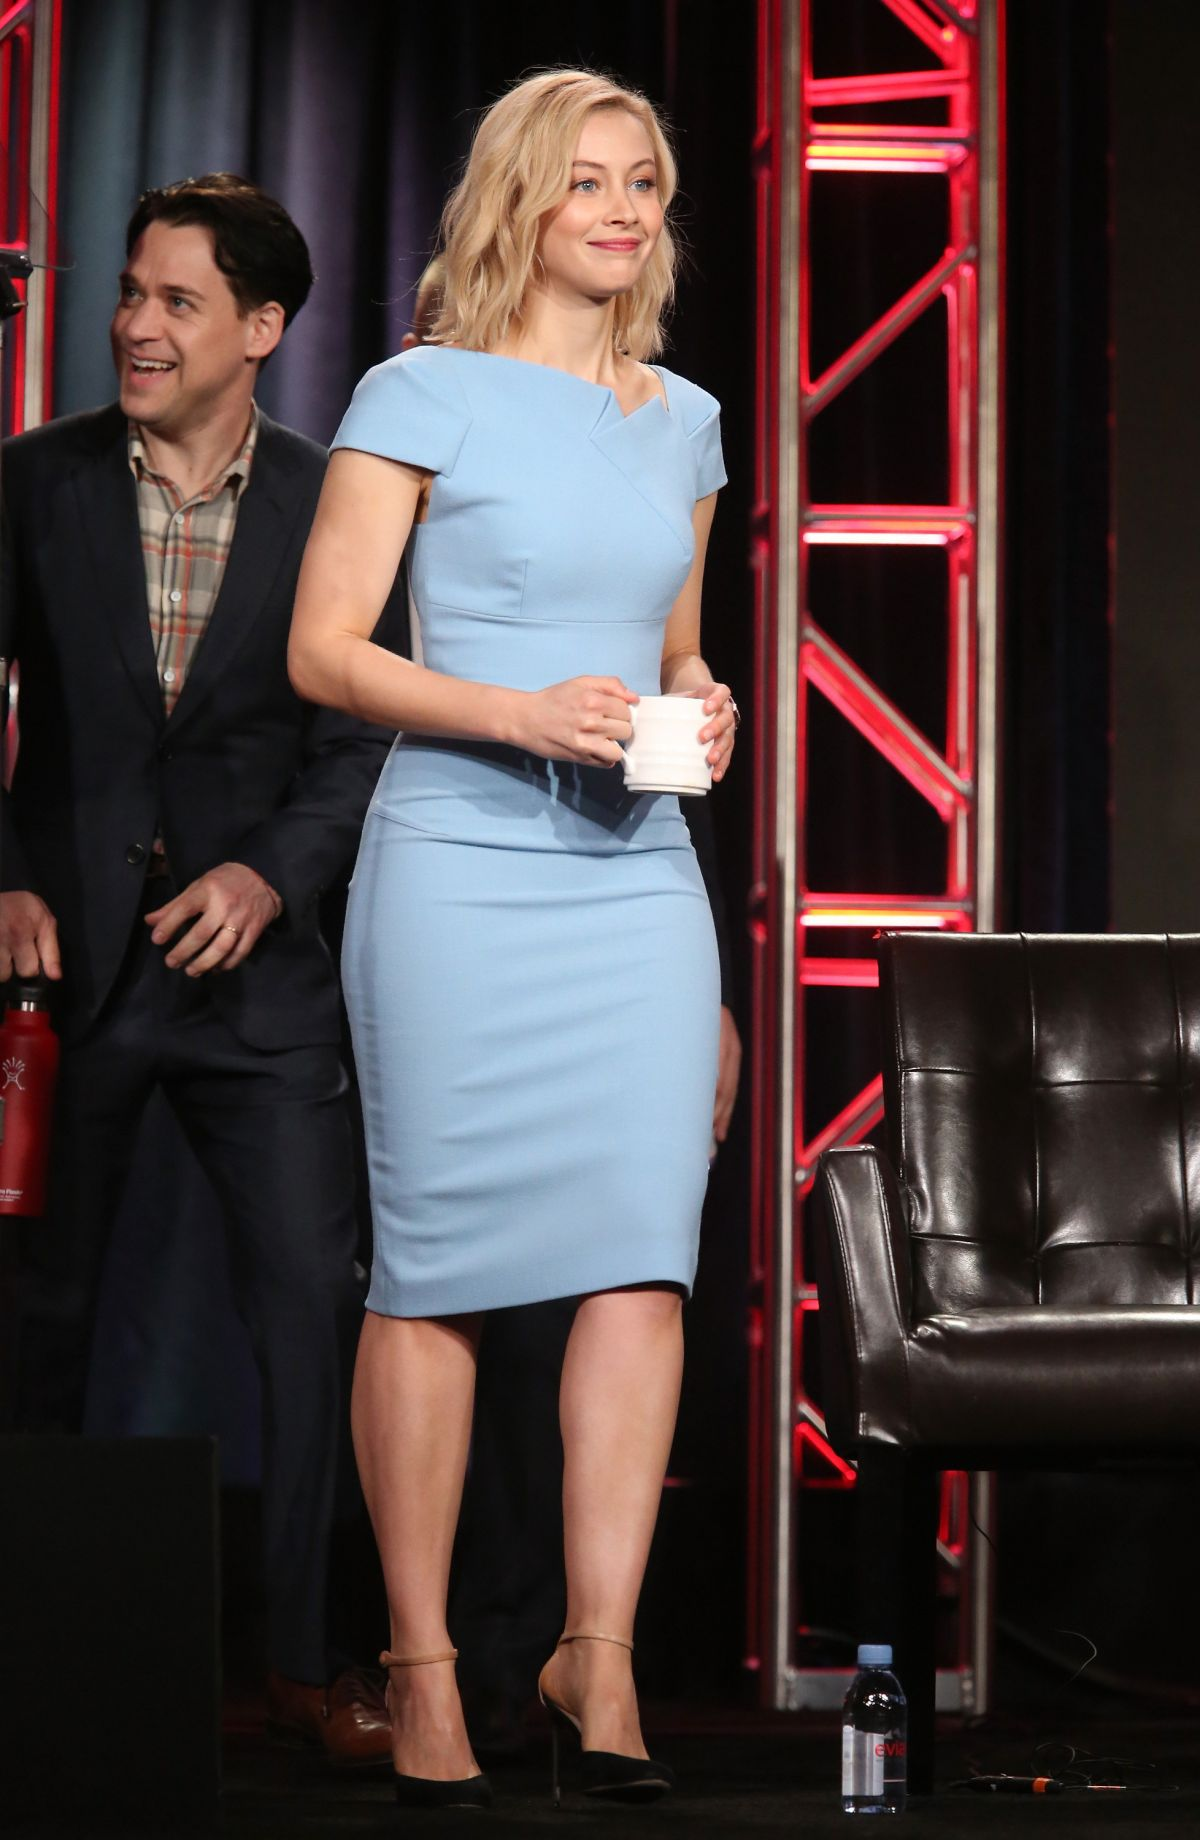 SARAH GADON at 2016 Winter TCA Tour Panel in Pasadena 01/09/2016